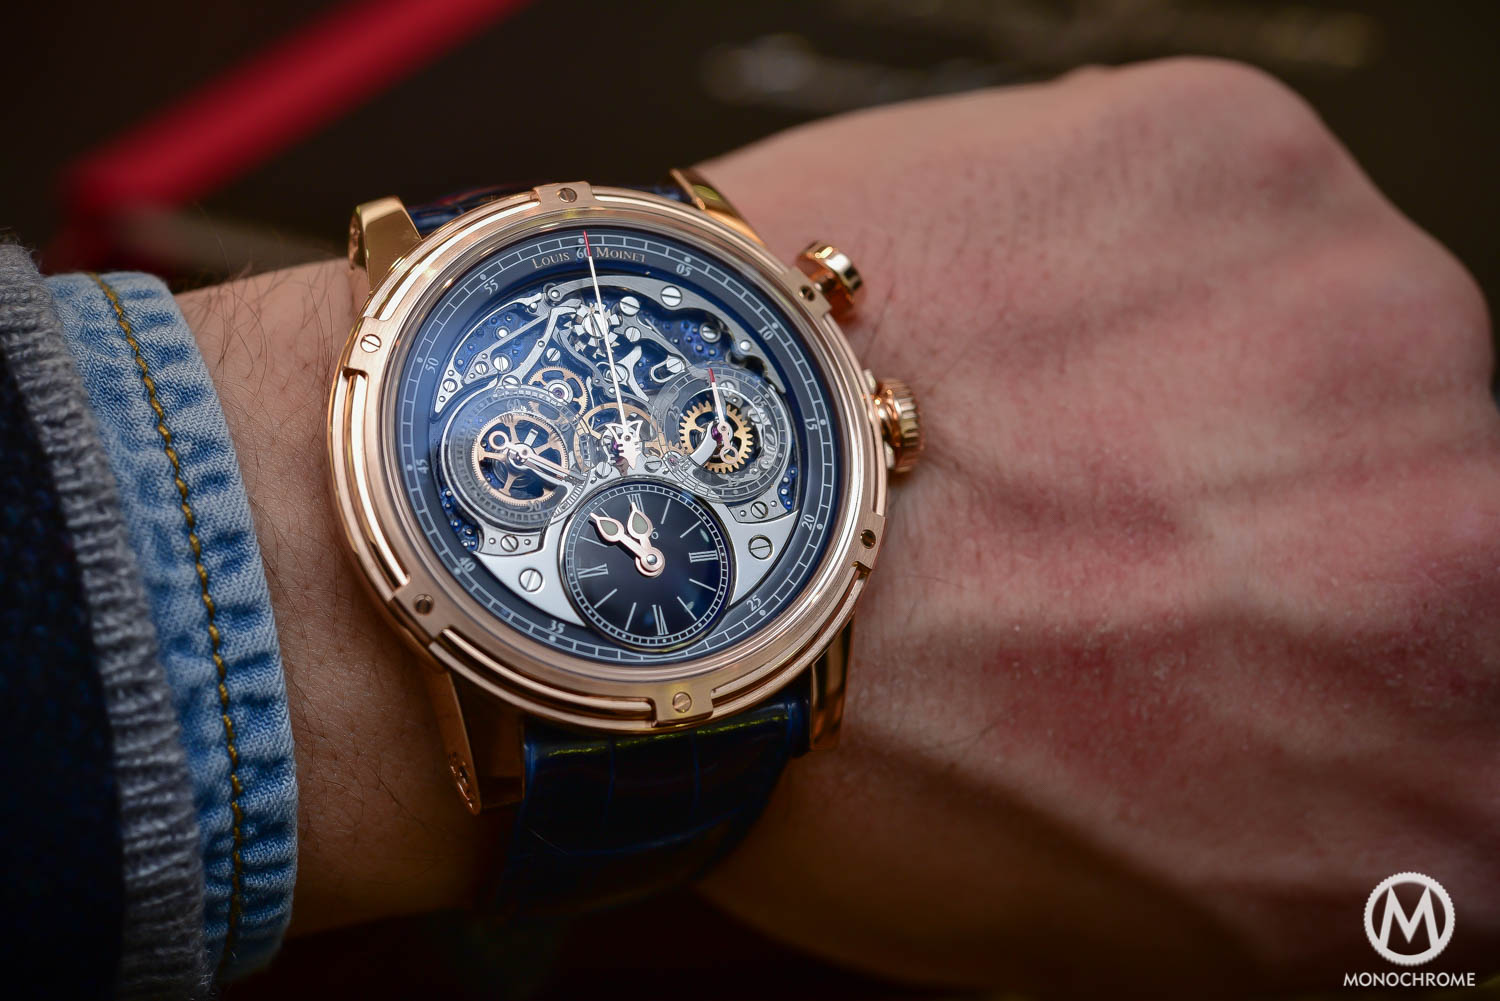 Louis Moinet Celebrates the 200th Anniversary of the Chronograph with the Memoris 200th edition (live pics & price) - Monochrome Watches